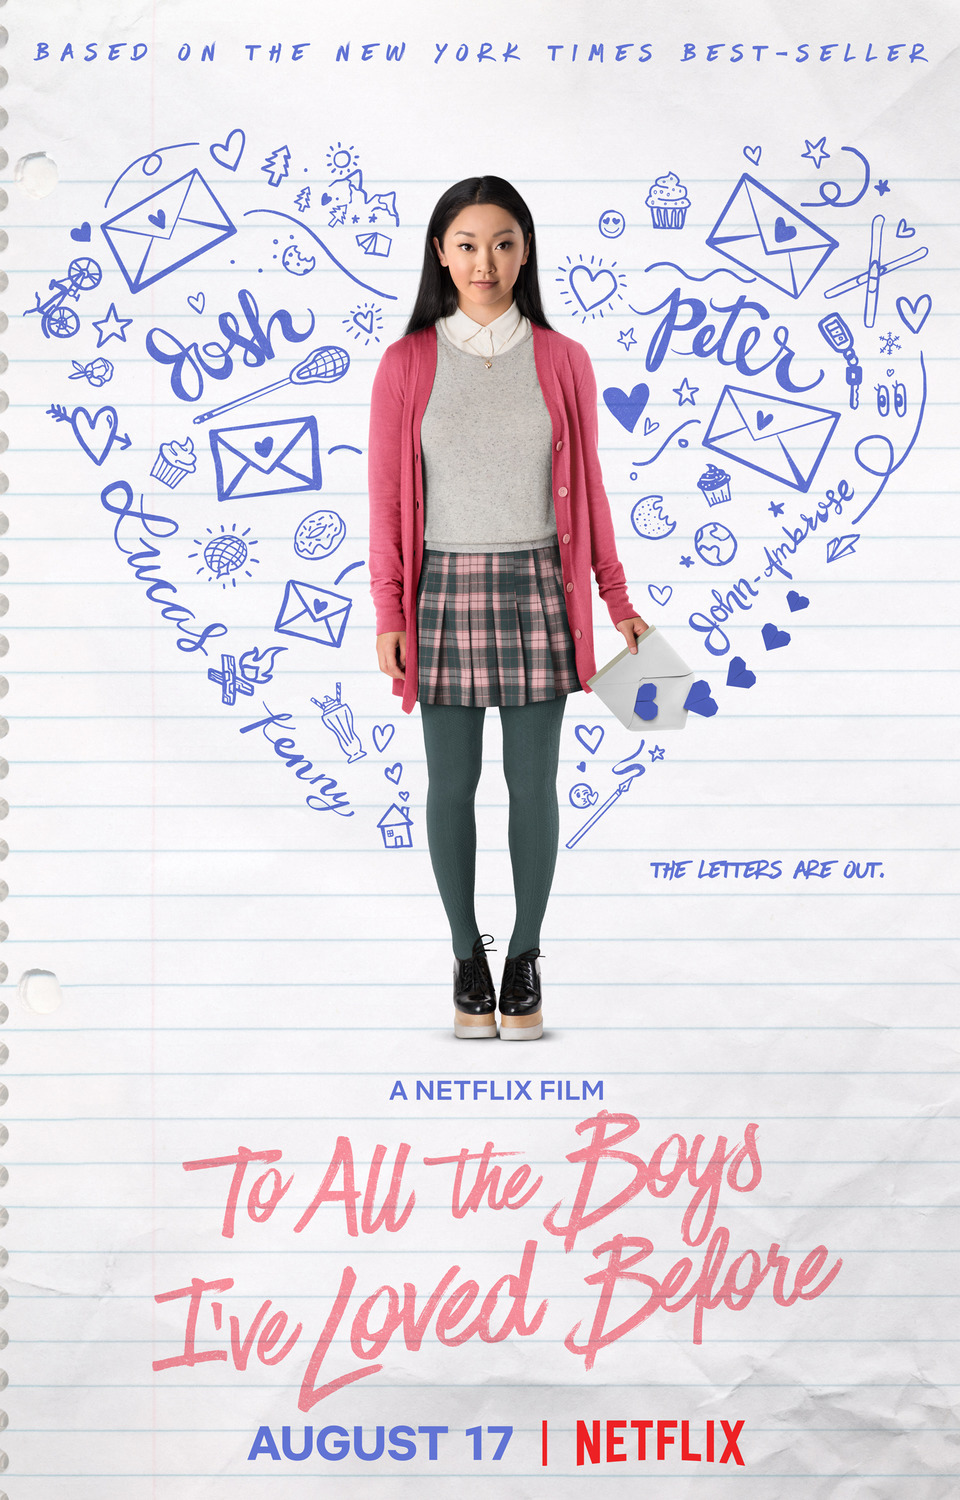 To All the Boys I've Loved Before premiered August 17th on Netflix.